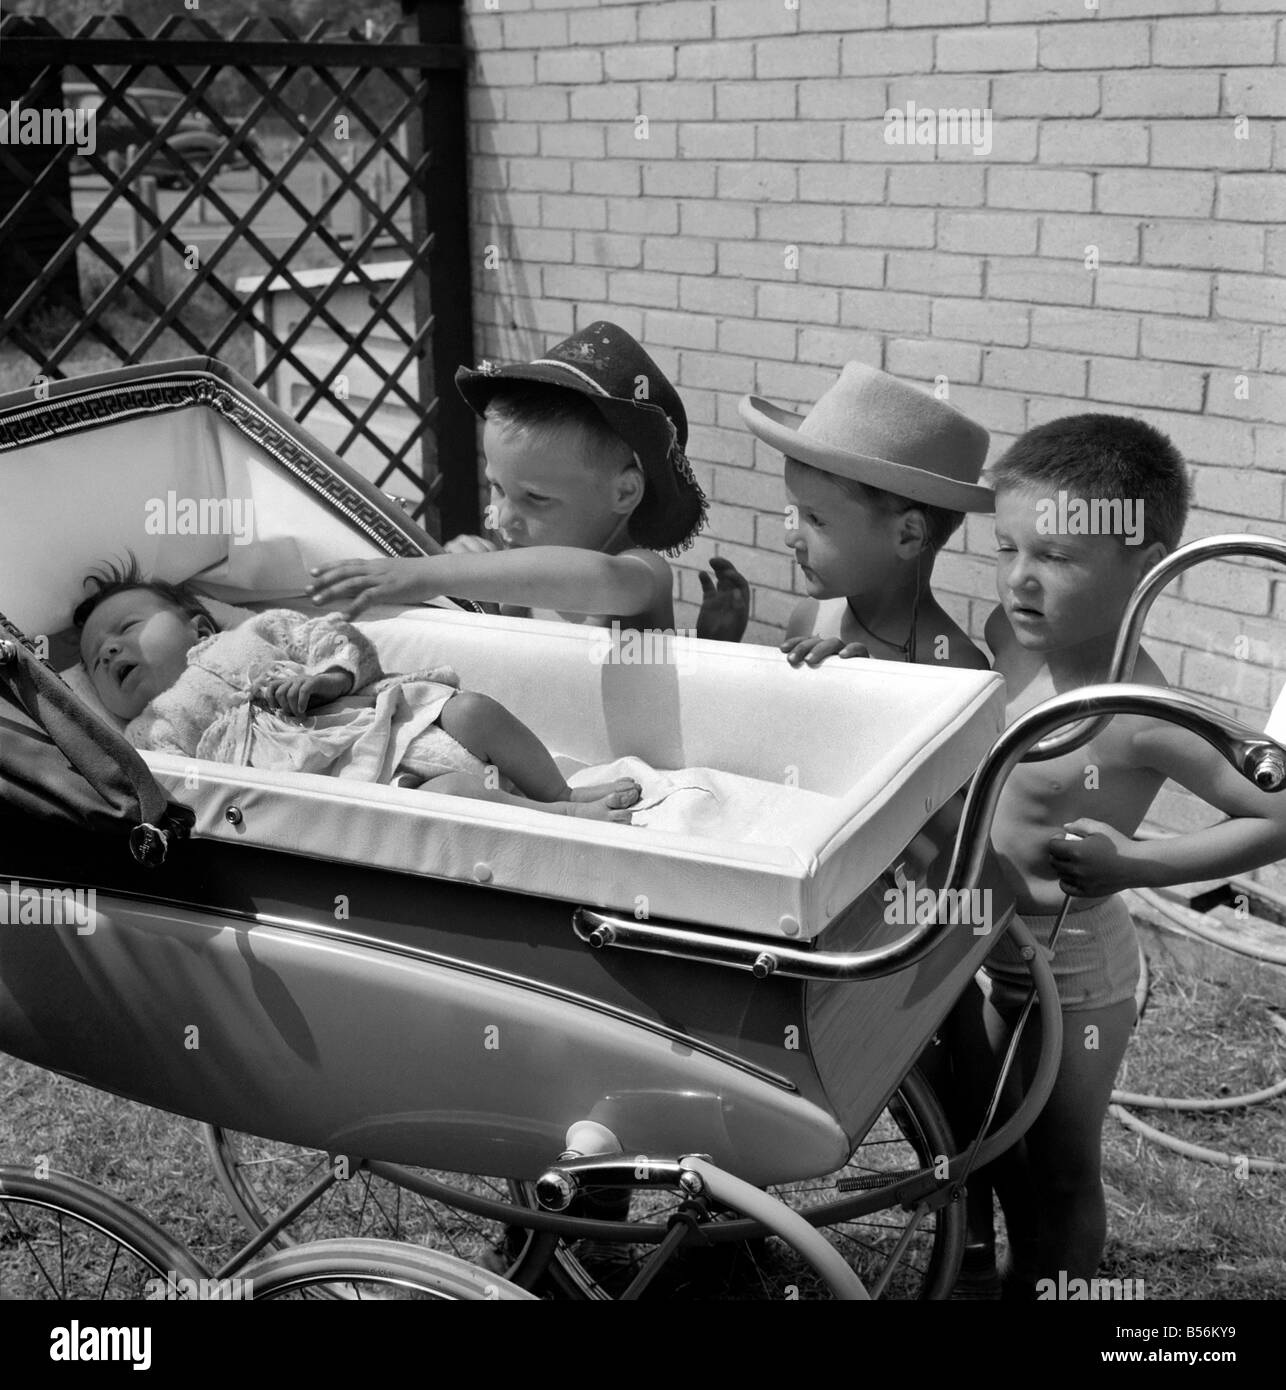 The three gloomy-faced triplet brothers all wearing cowboy hats leaning over the side of a pram in the garden of - Stock Image